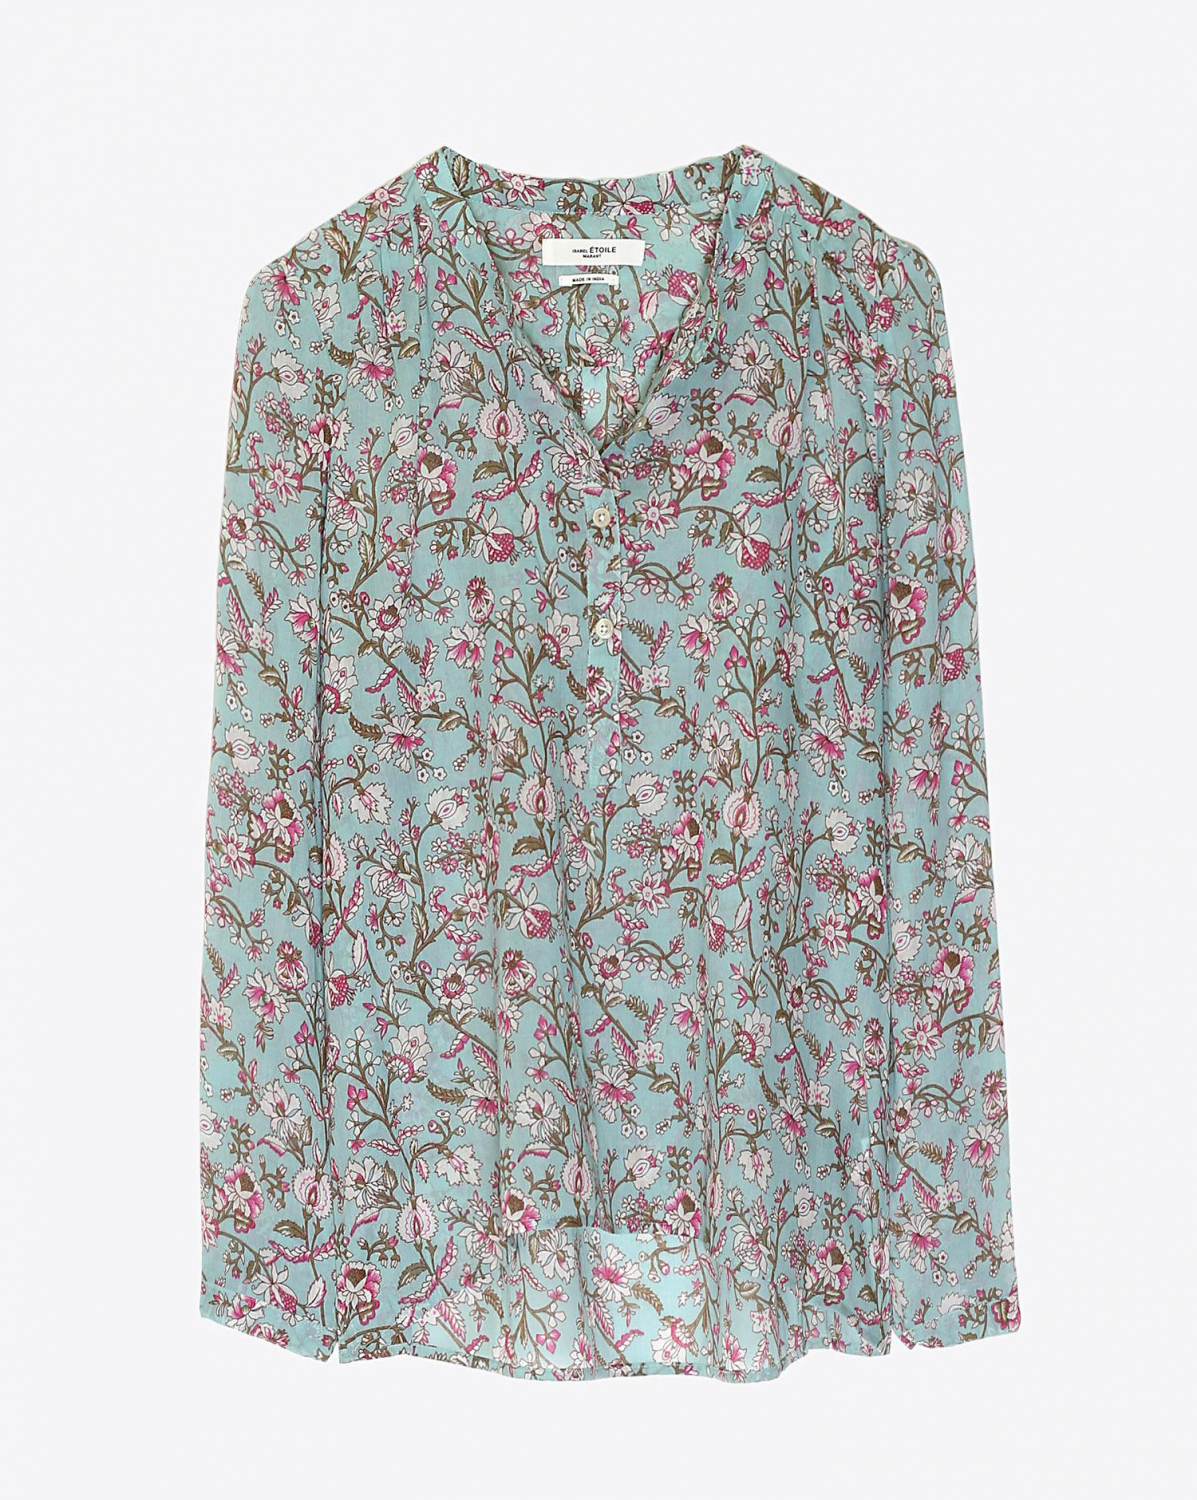 Isabel Marant Etoile Blouse MARIA - Water Green